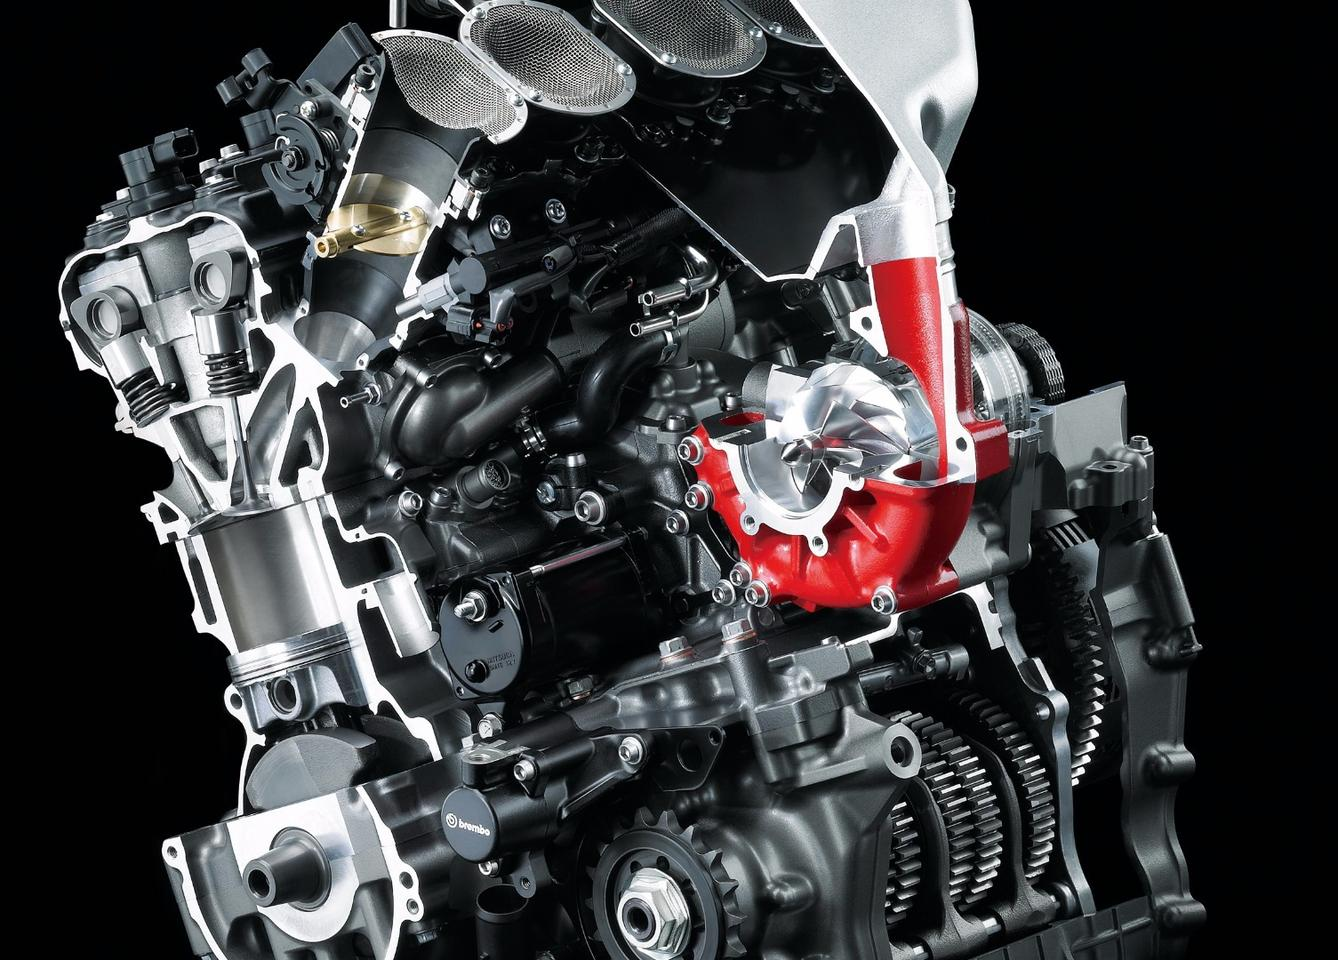 Forced induction systems, like the one from Kawasaki H2R, are making a comeback in motorcycle production and they are only targeting extreme power